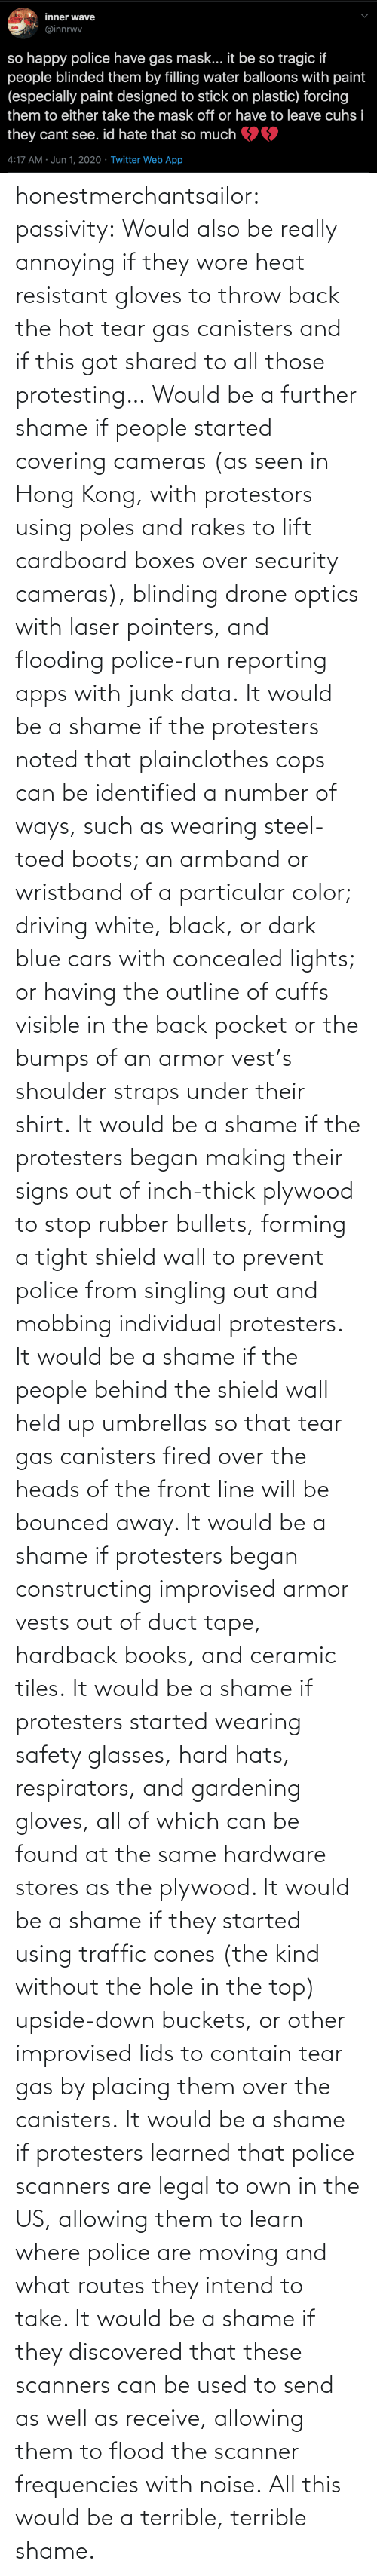 Blue: honestmerchantsailor: passivity: Would also be really annoying if they wore heat resistant gloves to throw back the hot tear gas canisters and if this got shared to all those protesting… Would be a further shame if people started covering cameras (as seen in Hong Kong, with protestors using poles and rakes to lift cardboard boxes over security cameras), blinding drone optics with laser pointers, and flooding police-run reporting apps with junk data. It would be a shame if the protesters noted that plainclothes cops can be identified a number of ways, such as wearing steel-toed boots; an armband or wristband of a particular color; driving white, black, or dark blue cars with concealed lights; or having the outline of cuffs visible in the back pocket or the bumps of an armor vest's shoulder straps under their shirt. It would be a shame if the protesters began making their signs out of inch-thick plywood to stop rubber bullets, forming a tight shield wall to prevent police from singling out and mobbing individual protesters. It would be a shame if the people behind the shield wall held up umbrellas so that tear gas canisters fired over the heads of the front line will be bounced away. It would be a shame if protesters began constructing improvised armor vests out of duct tape, hardback books, and ceramic tiles. It would be a shame if protesters started wearing safety glasses, hard hats, respirators, and gardening gloves, all of which can be found at the same hardware stores as the plywood. It would be a shame if they started using traffic cones (the kind without the hole in the top) upside-down buckets, or other improvised lids to contain tear gas by placing them over the canisters. It would be a shame if protesters learned that police scanners are legal to own in the US, allowing them to learn where police are moving and what routes they intend to take. It would be a shame if they discovered that these scanners can be used to send as well as receive, allowing them to flood the scanner frequencies with noise. All this would be a terrible, terrible shame.